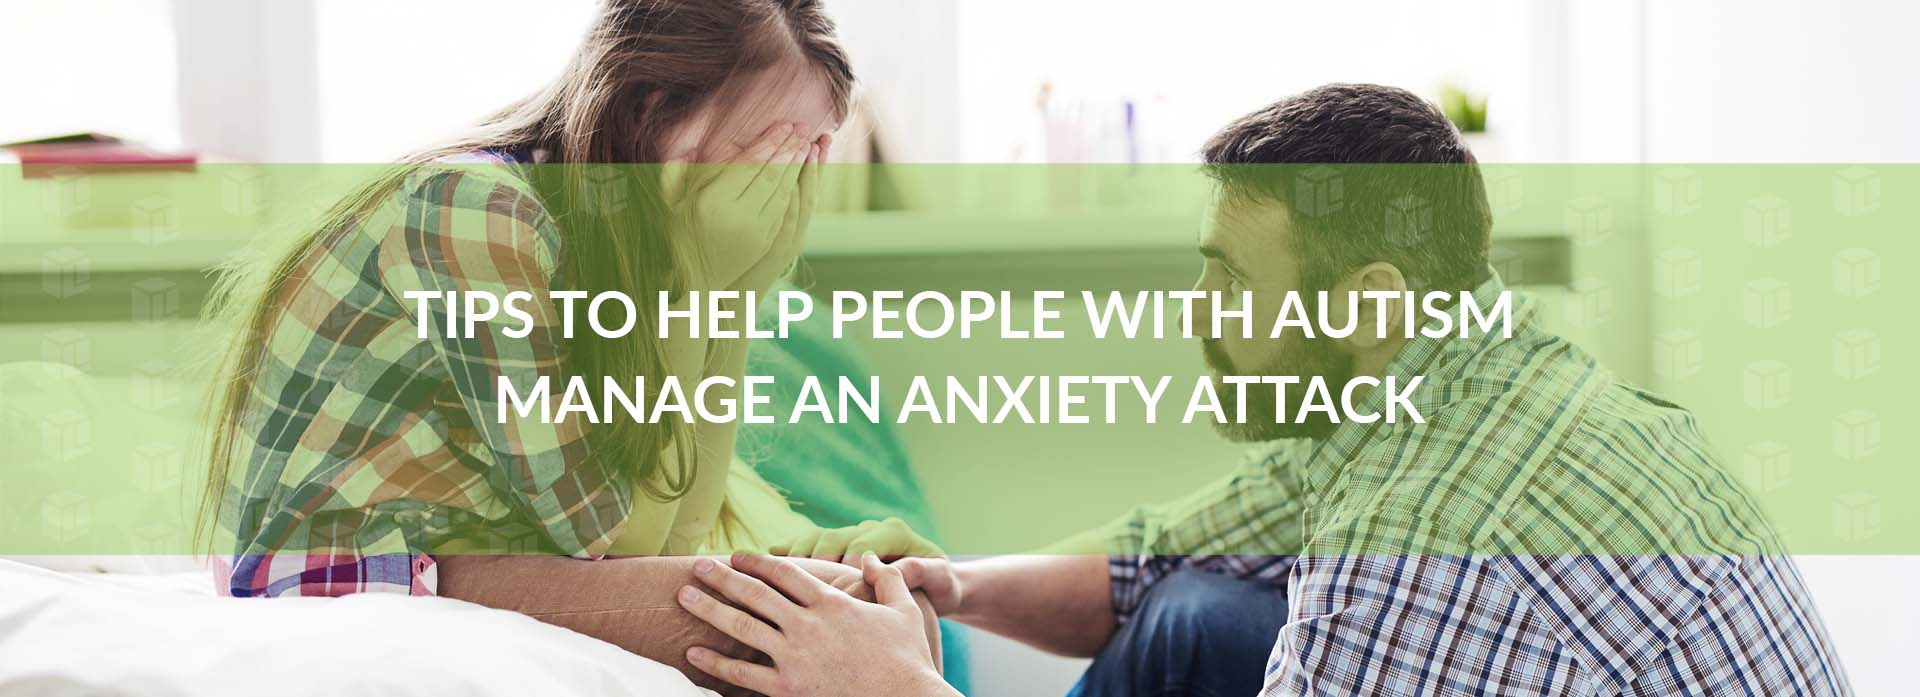 Tips To Help People With Autism Manage An Anxiety Attack